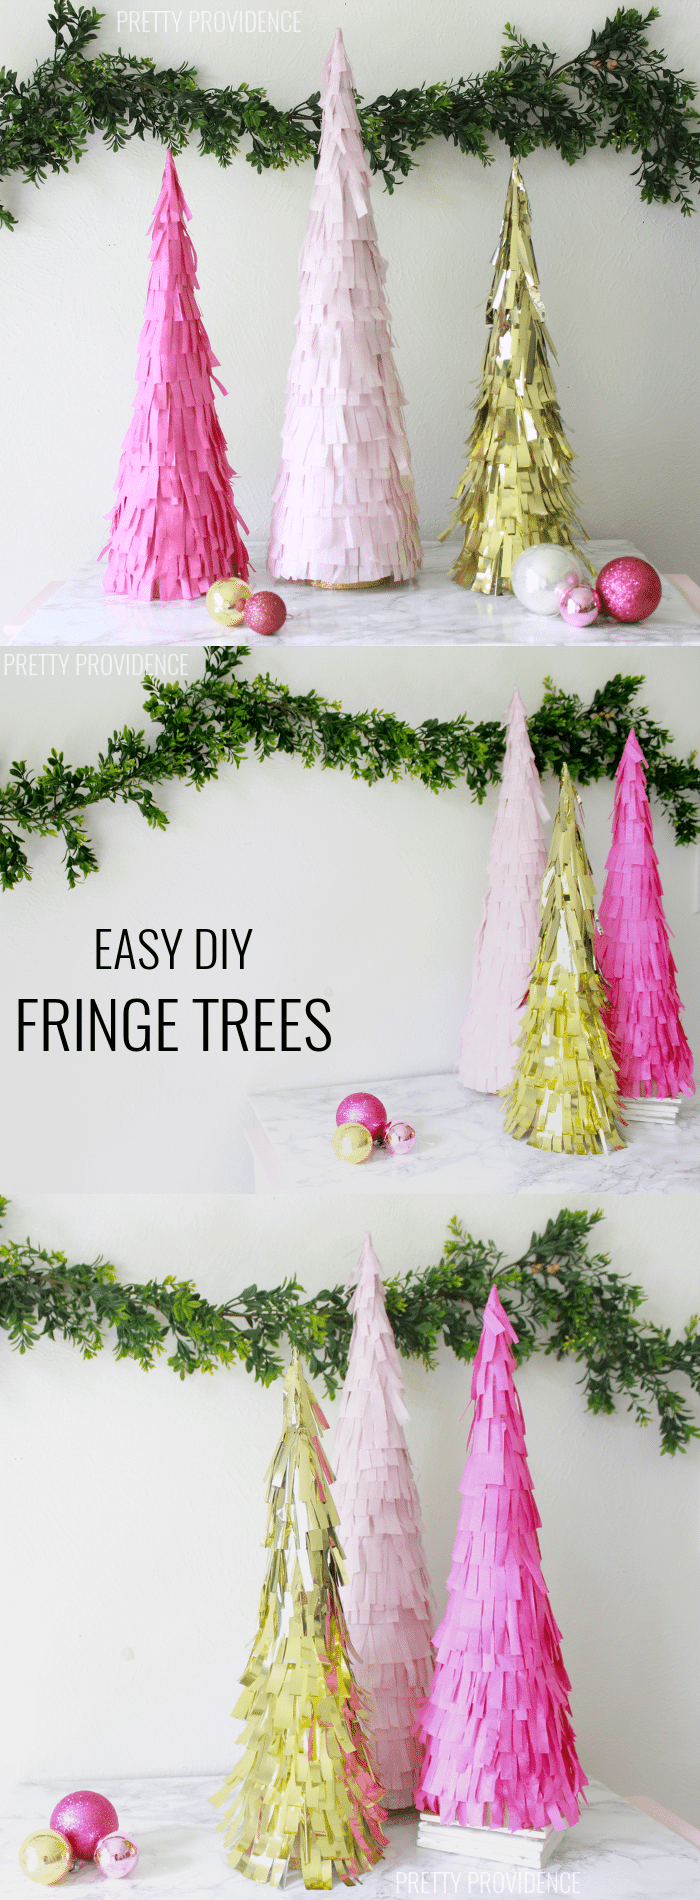 OBSESSED with these DIY fringe trees! Can do any color. prettyprovidence.com